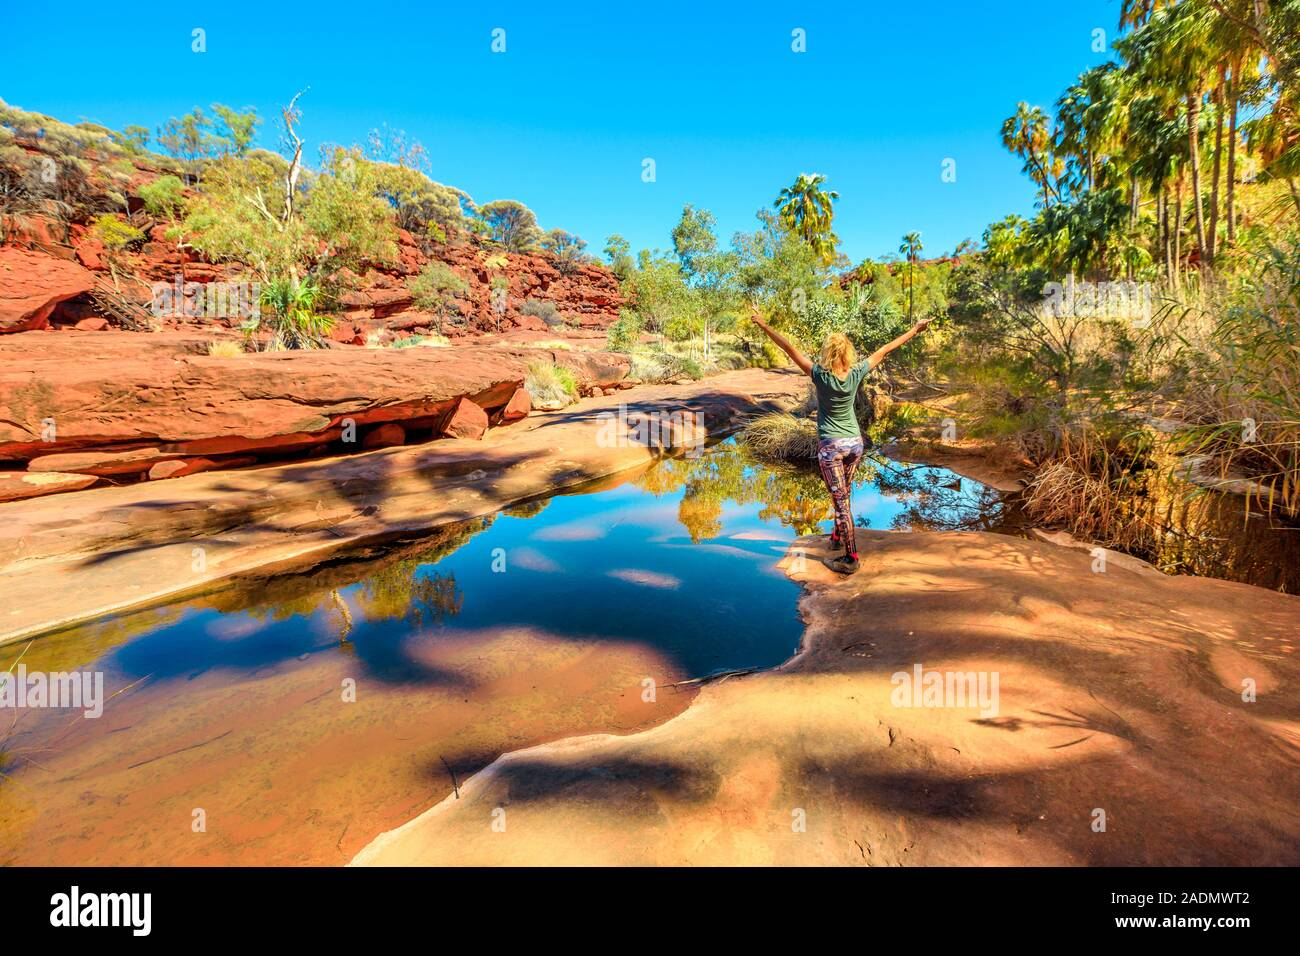 Carefree woman enjoying sandstone cliffs and red Cabbage Palm reflecting on waterhole in Palm Valley Oasis, Finke Gorge National Park. Tourism Outback Stock Photo